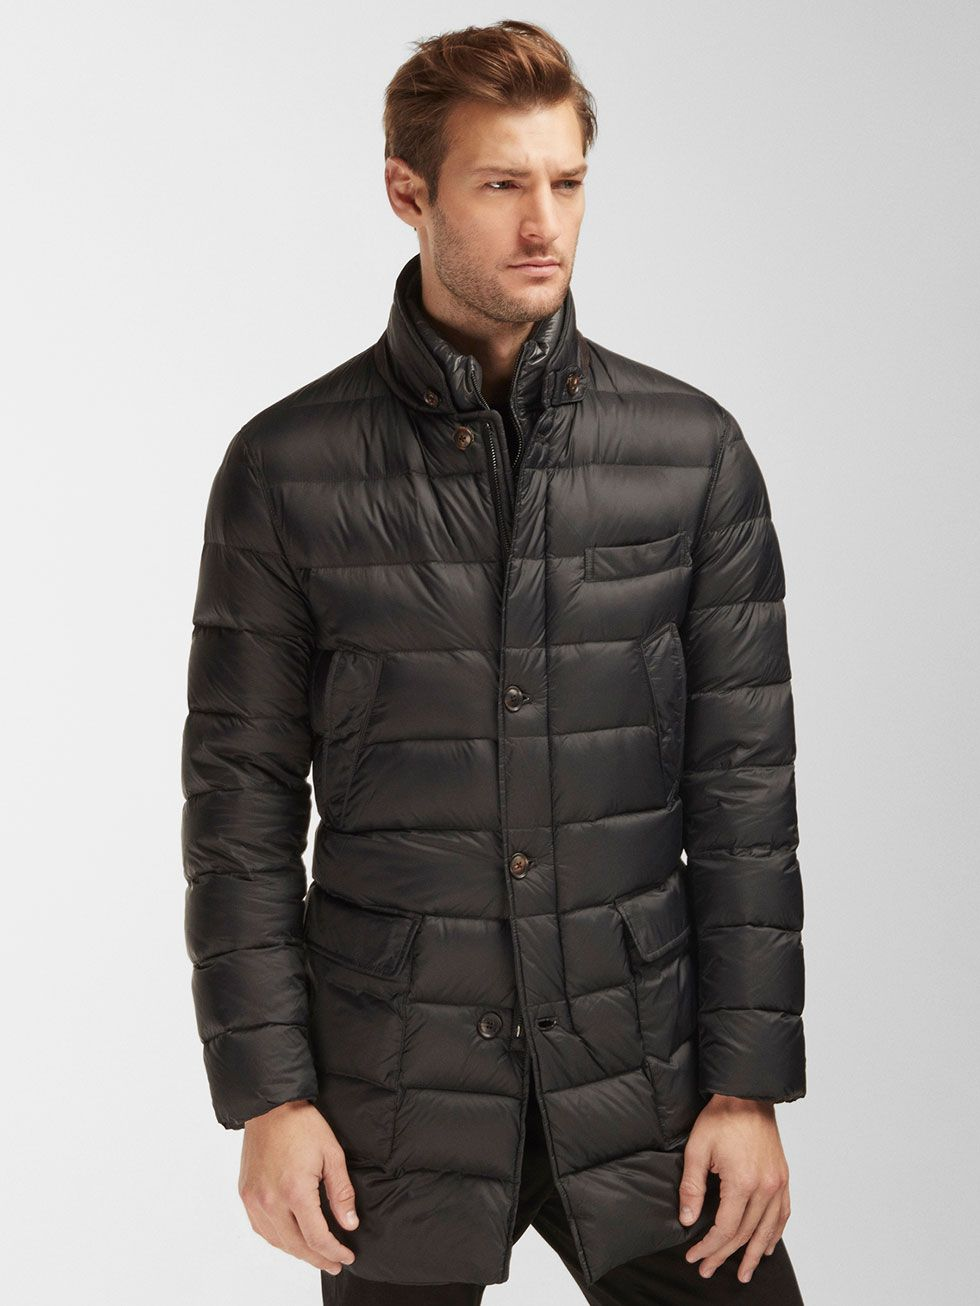 e07425246f Autumn winter 2016 MEN´s LIGHTWEIGHT QUILTED FEATHER DOWN 3/4 COAT at  Massimo Dutti for 54995. Effortless elegance!